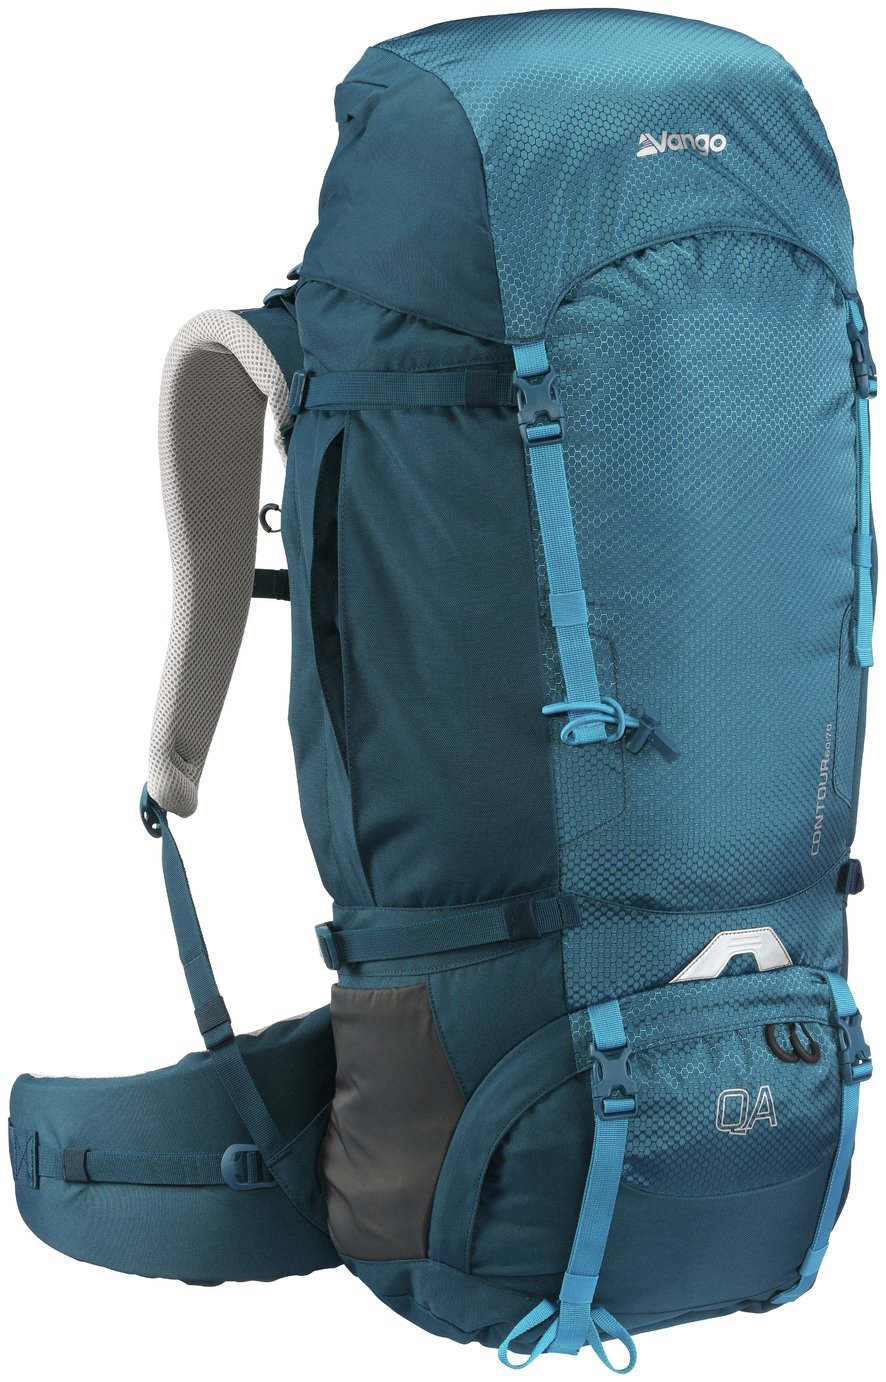 Vango Contour 60:70L 70L Backpack - Blue